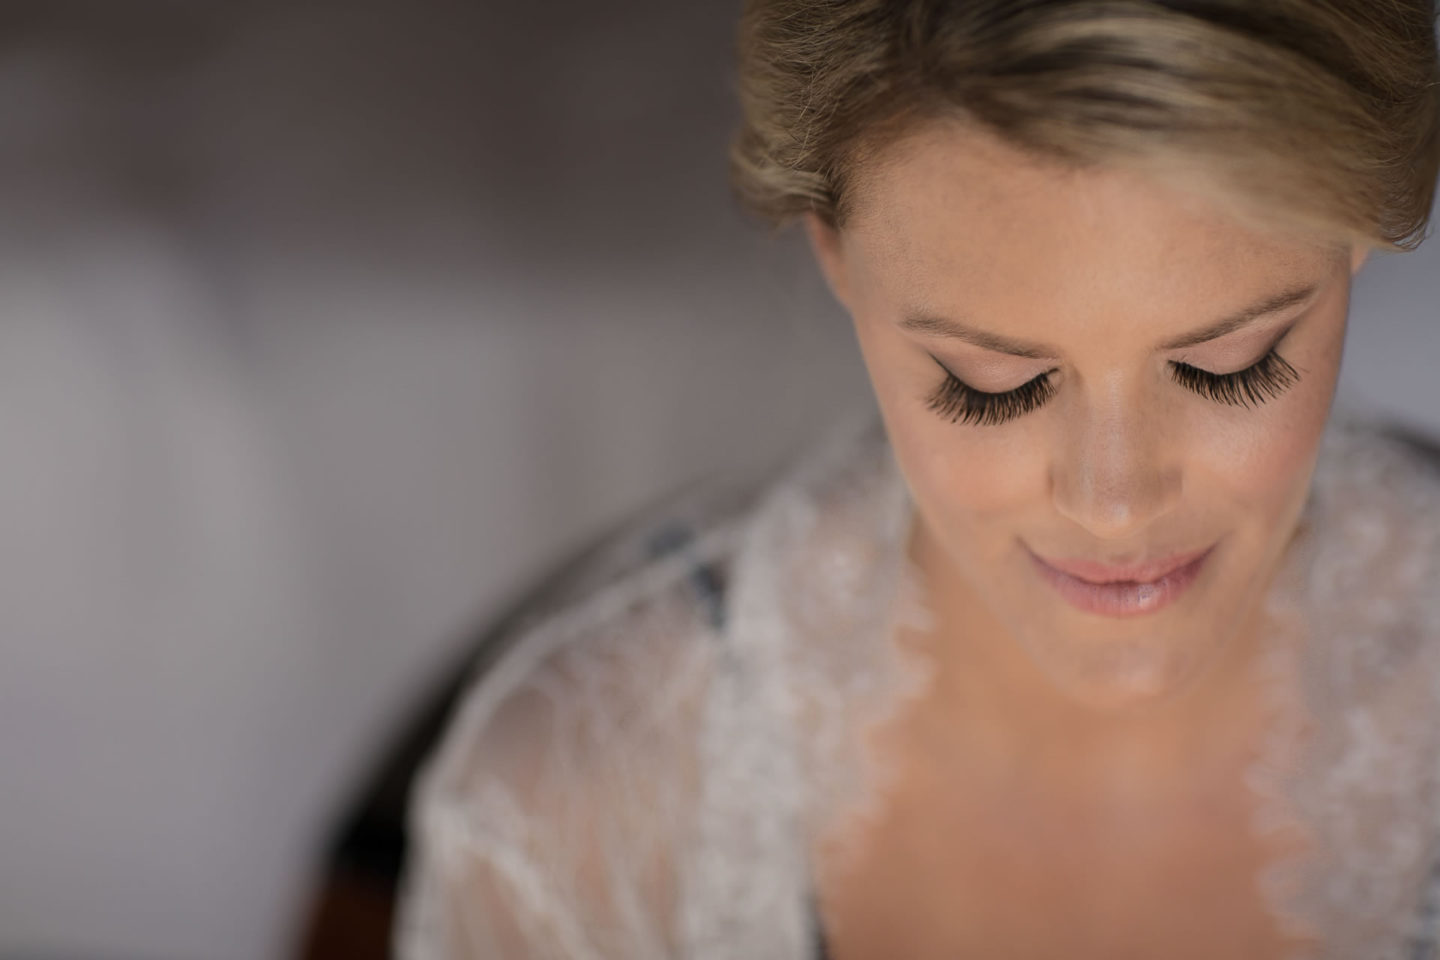 Portrait :: Wedding in Positano. Sea and love :: Wedding photographer based in Florence Tuscany Italy :: photo-14 :: Portrait